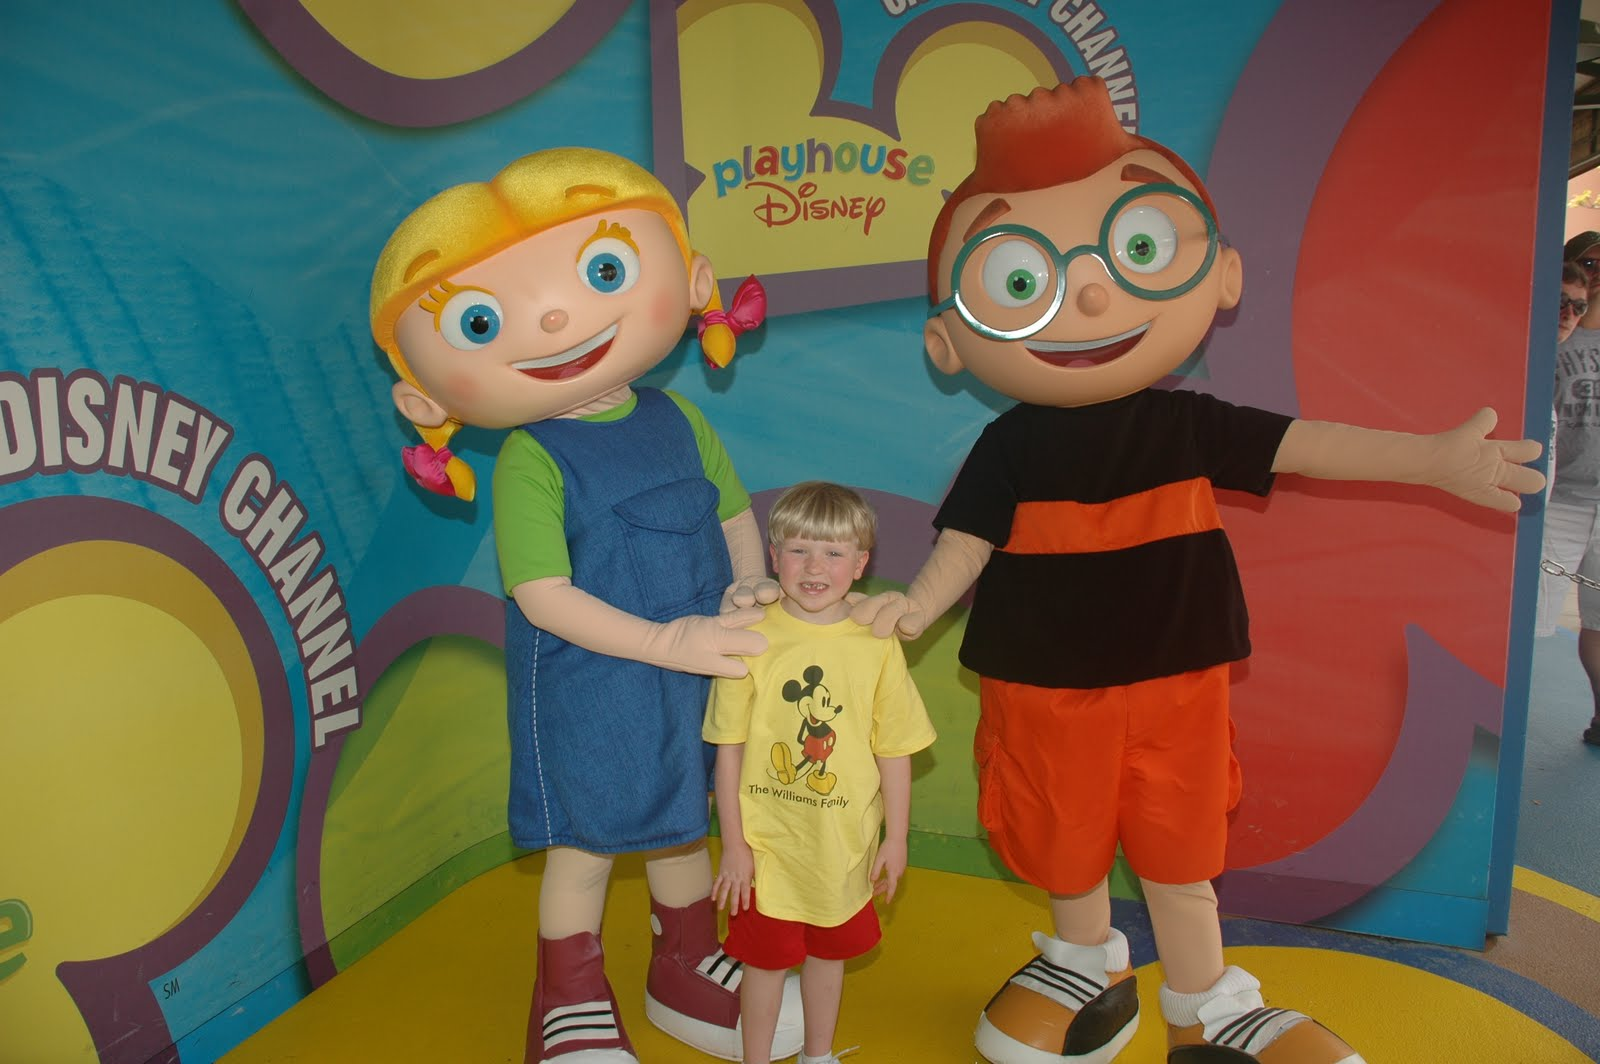 Uncategorized Little Einsteins Playhouse Disney williams family meeting the characters from playhouse disney disney